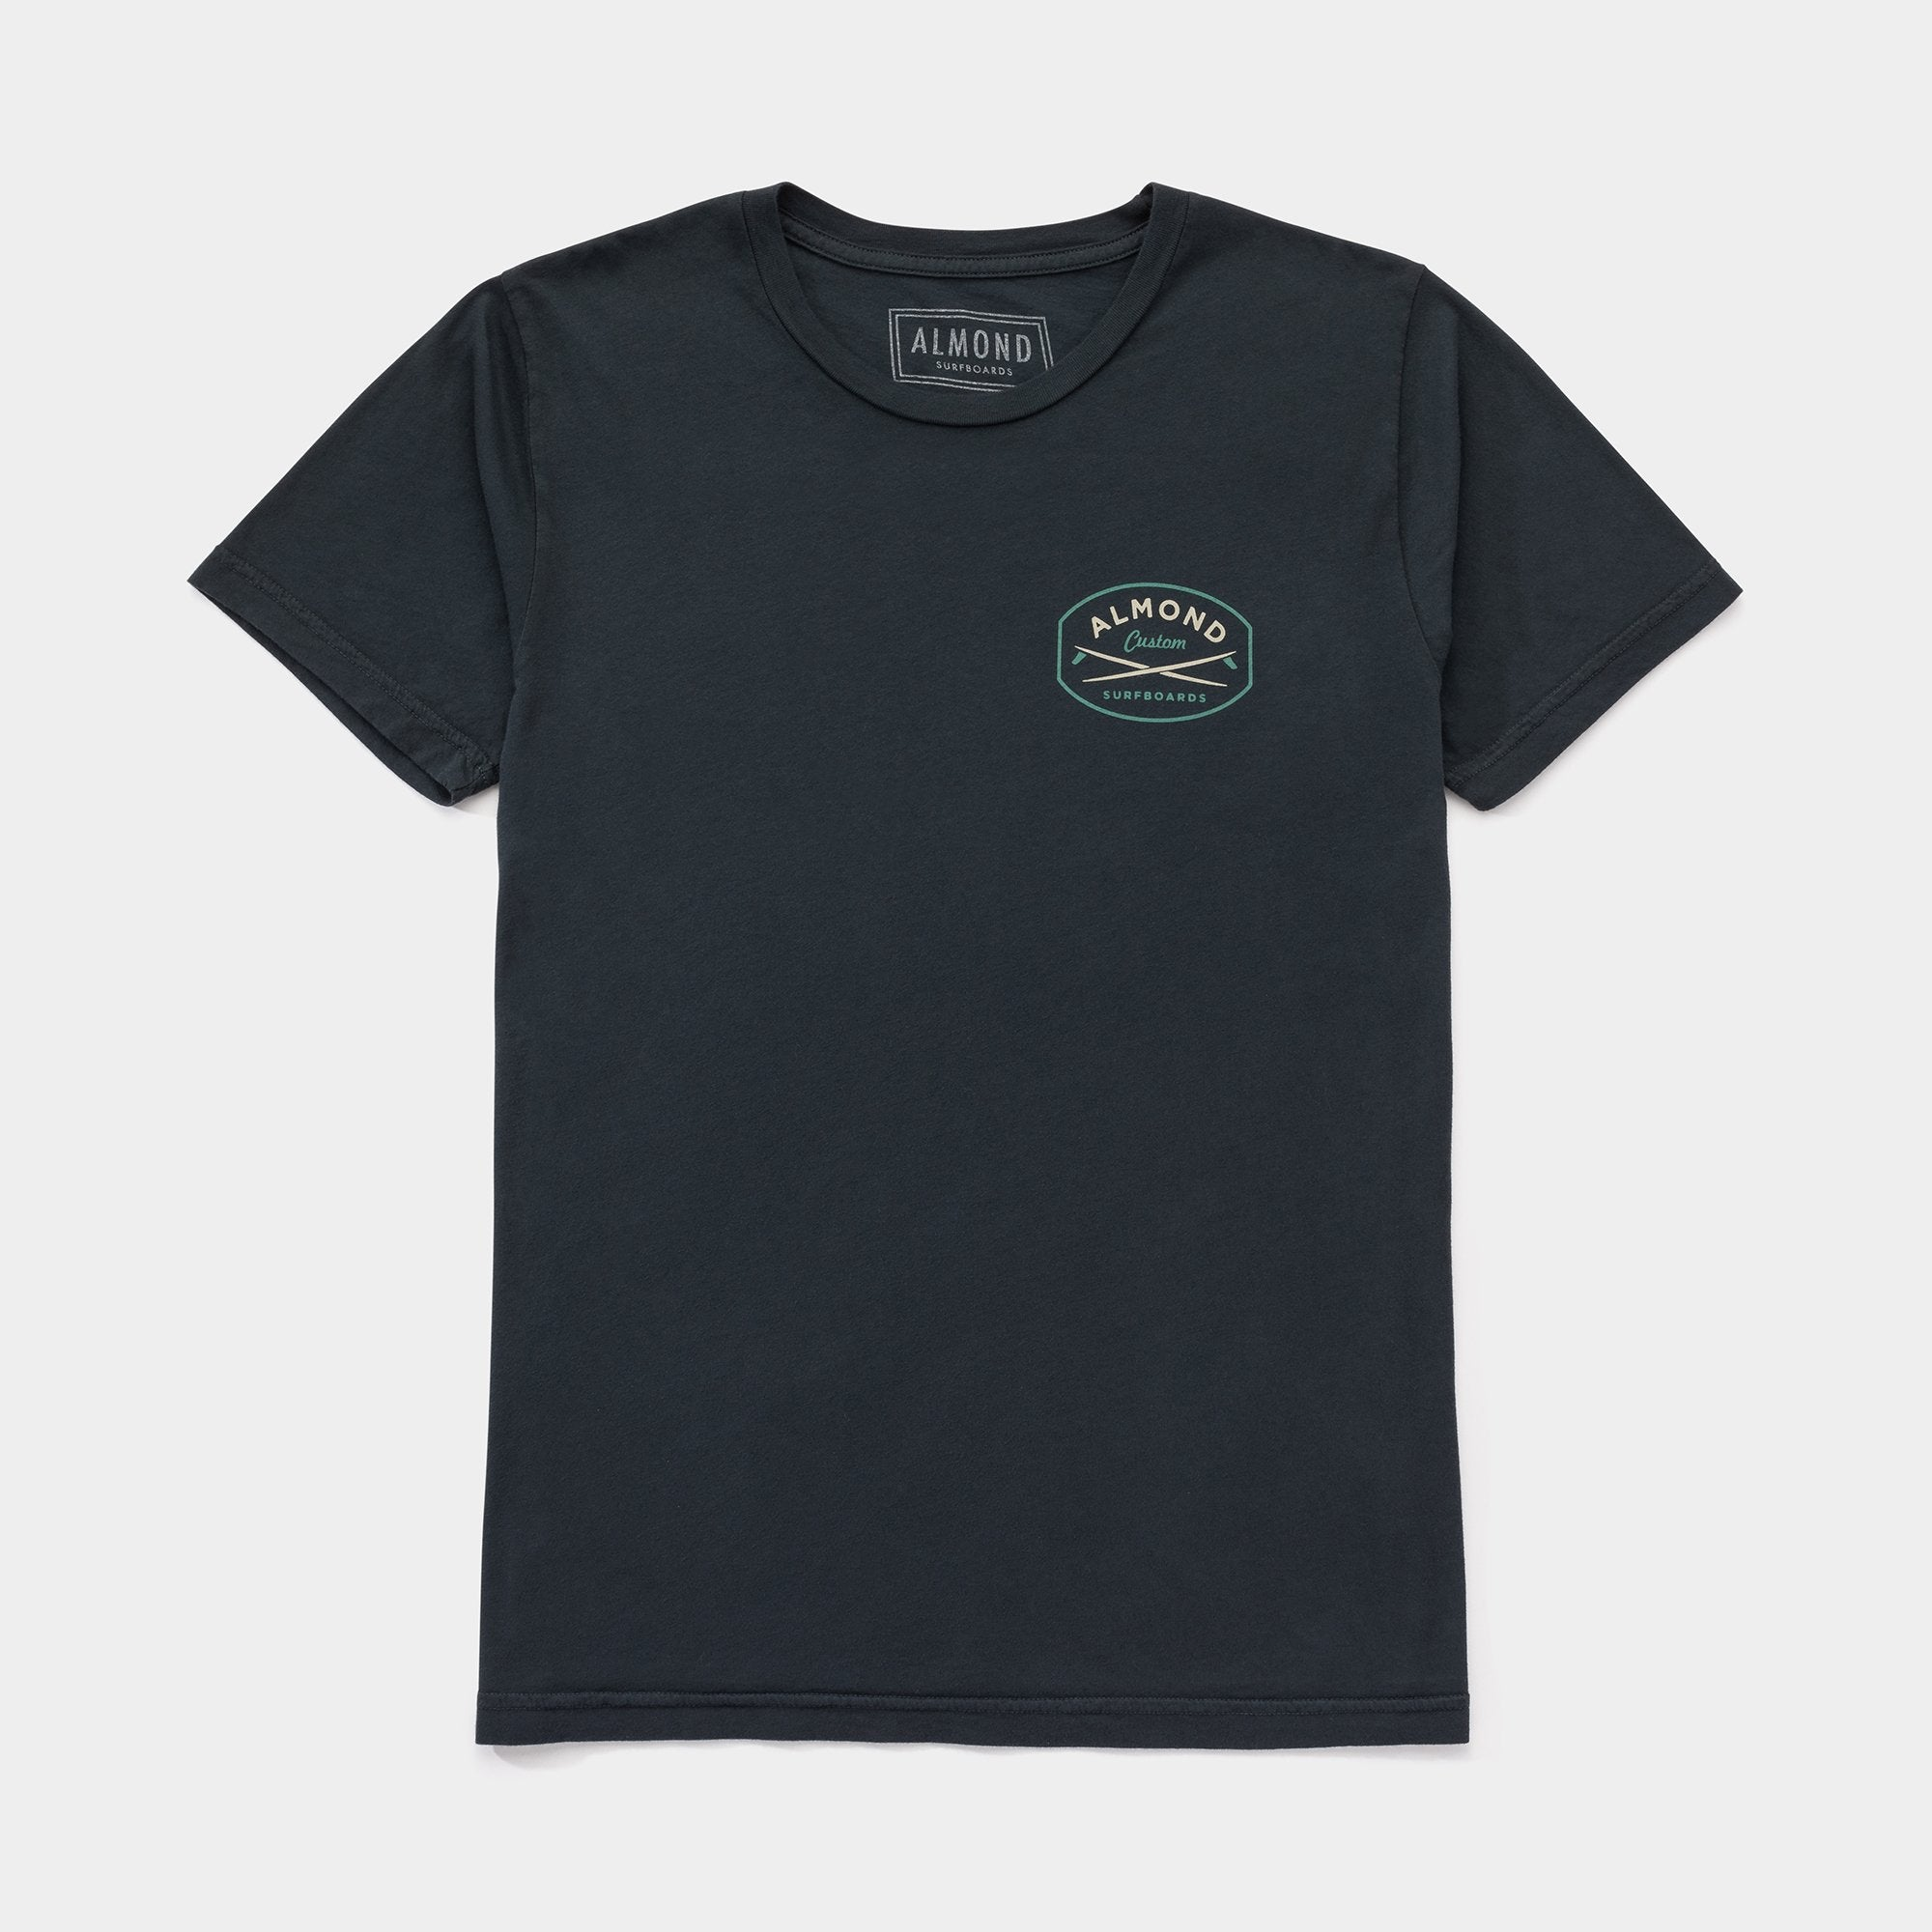 Almond Surfboards Gravel Tee - Vintage Black